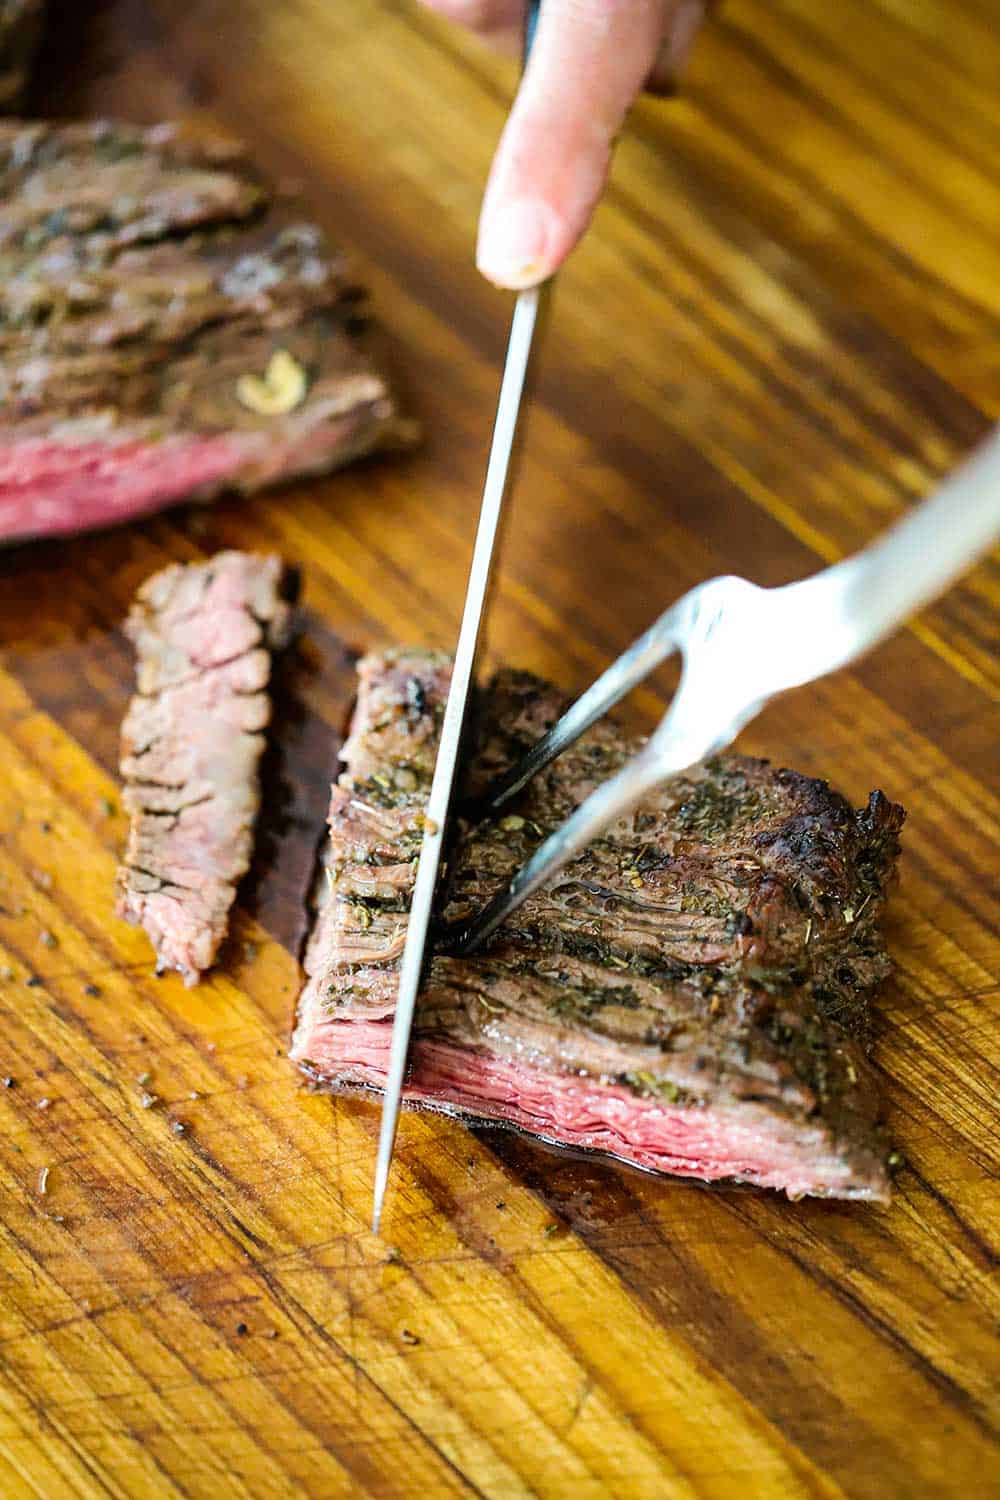 A hand using a carving knife and fork to slice a piece of grilled skirt steak against the grain to form bite-size strips.